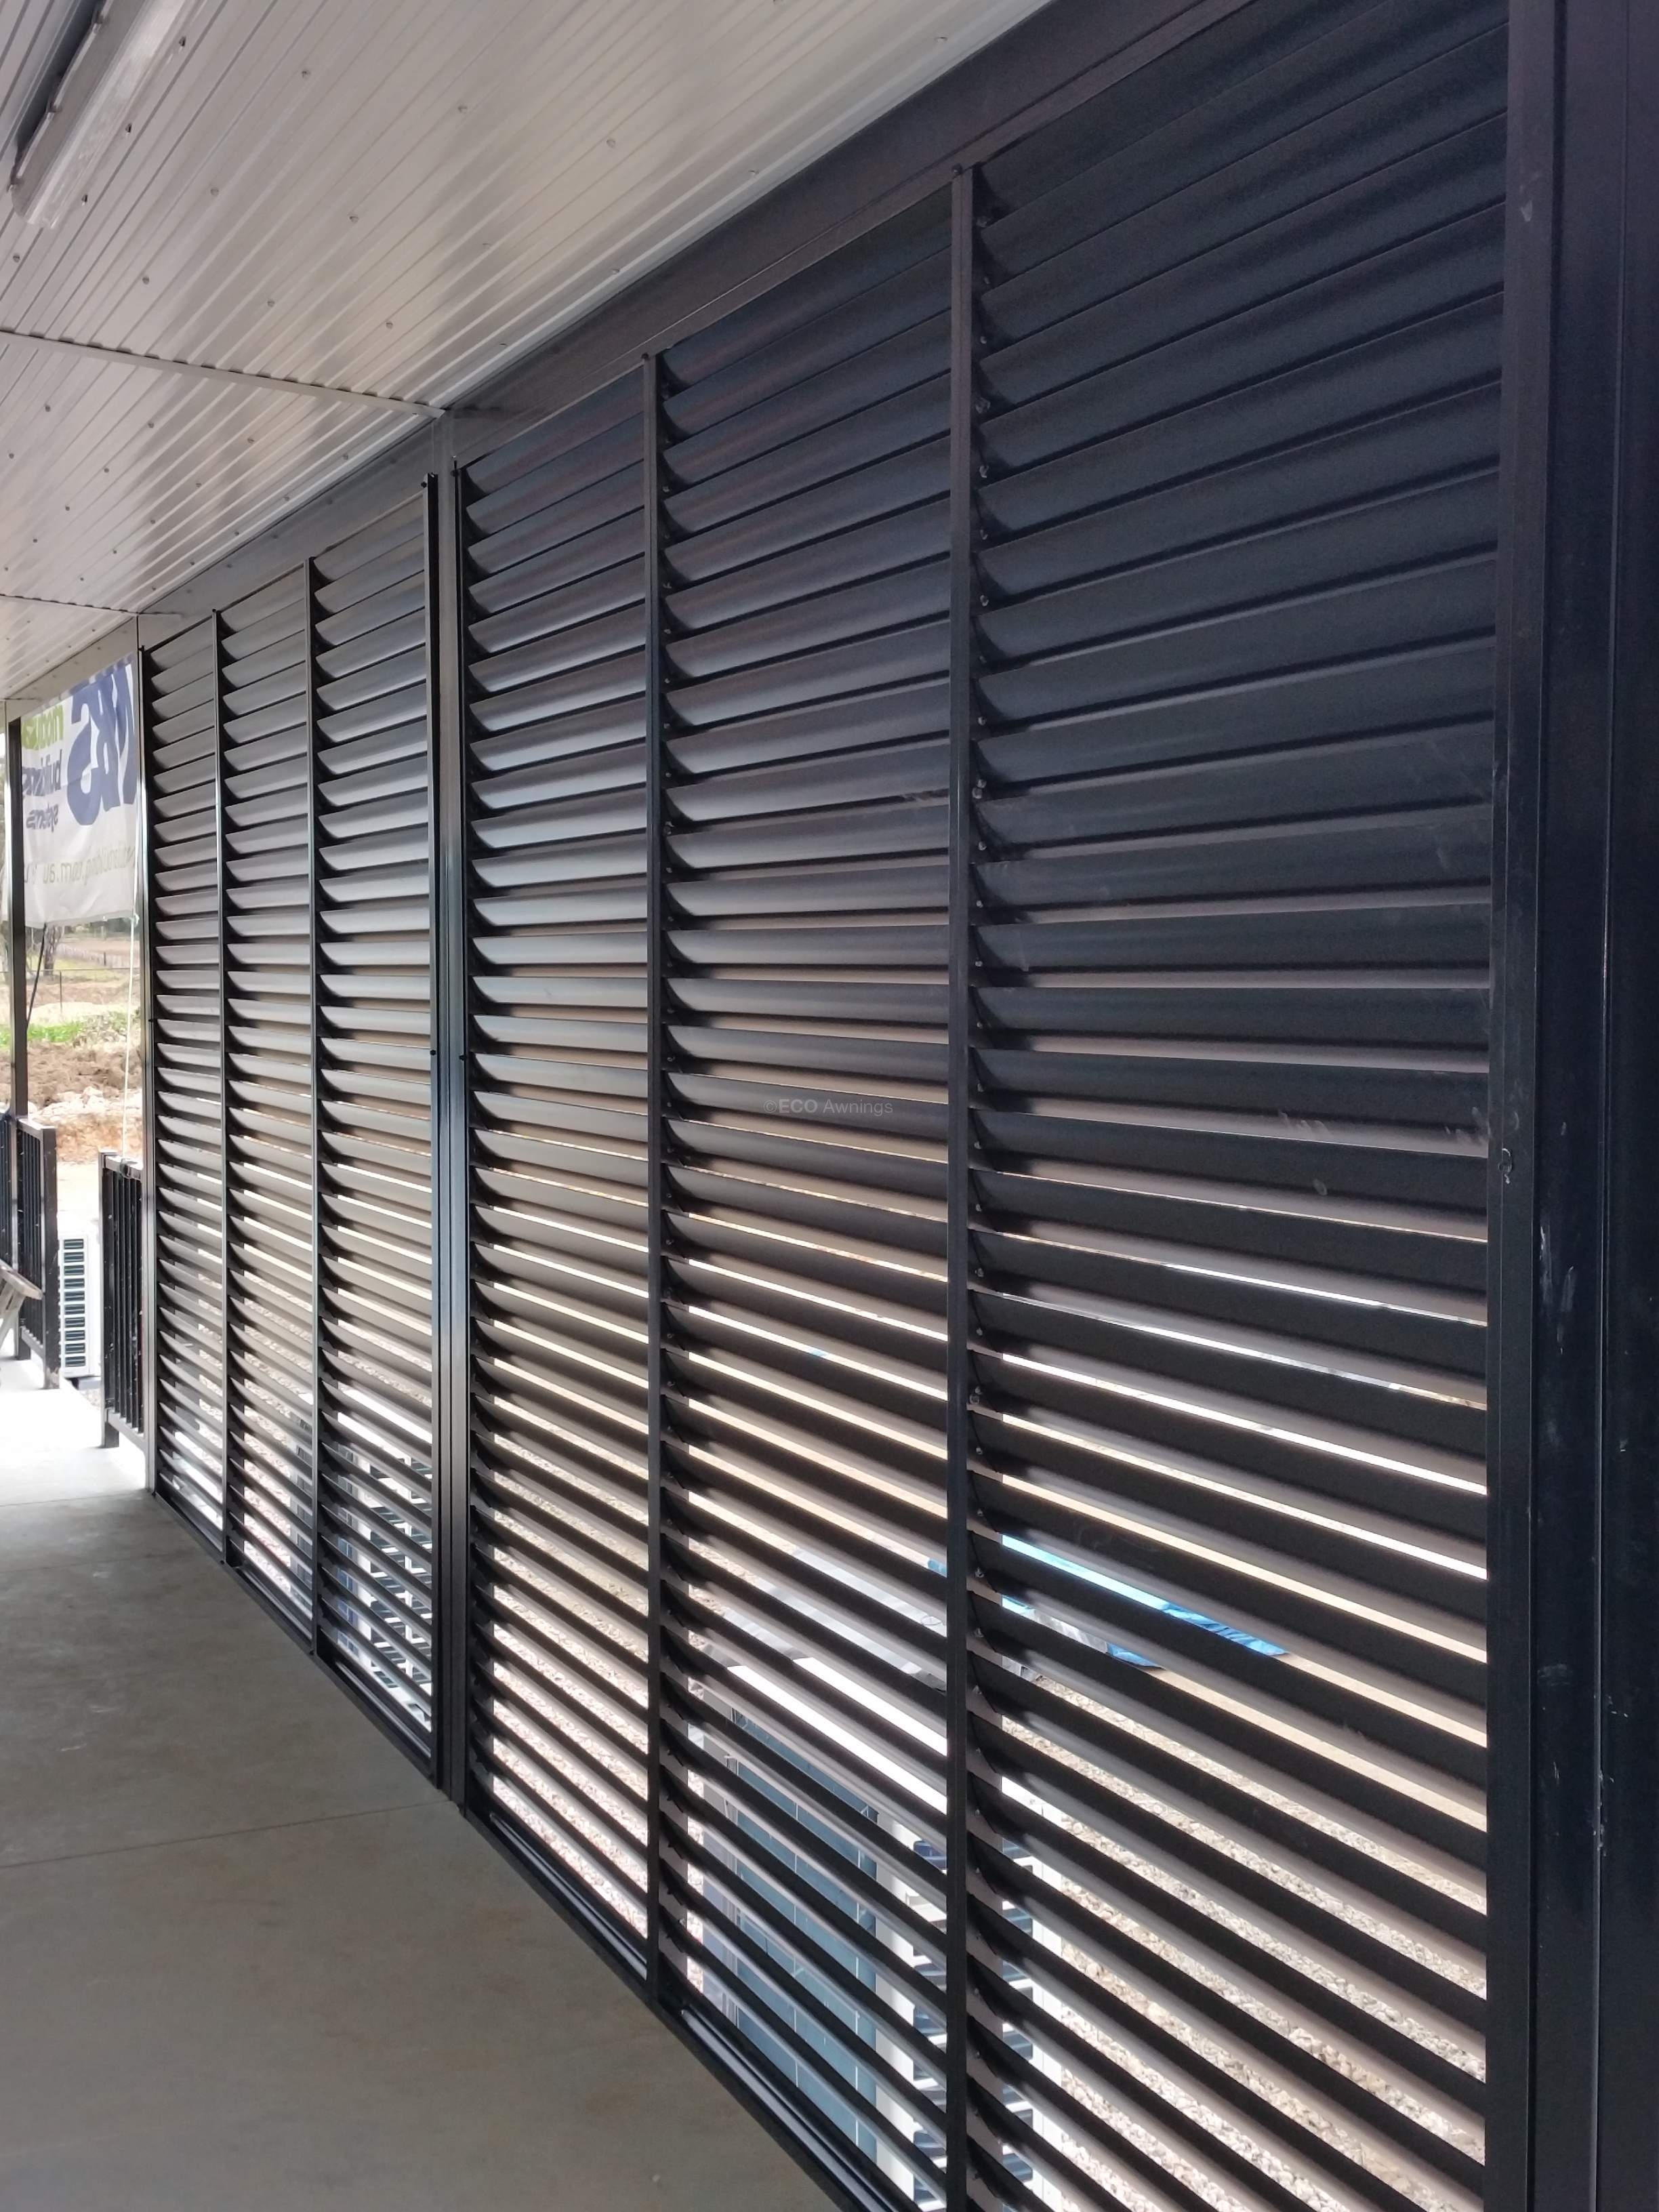 Privacy Screen Louvers With Fixed Welded Louvers In A